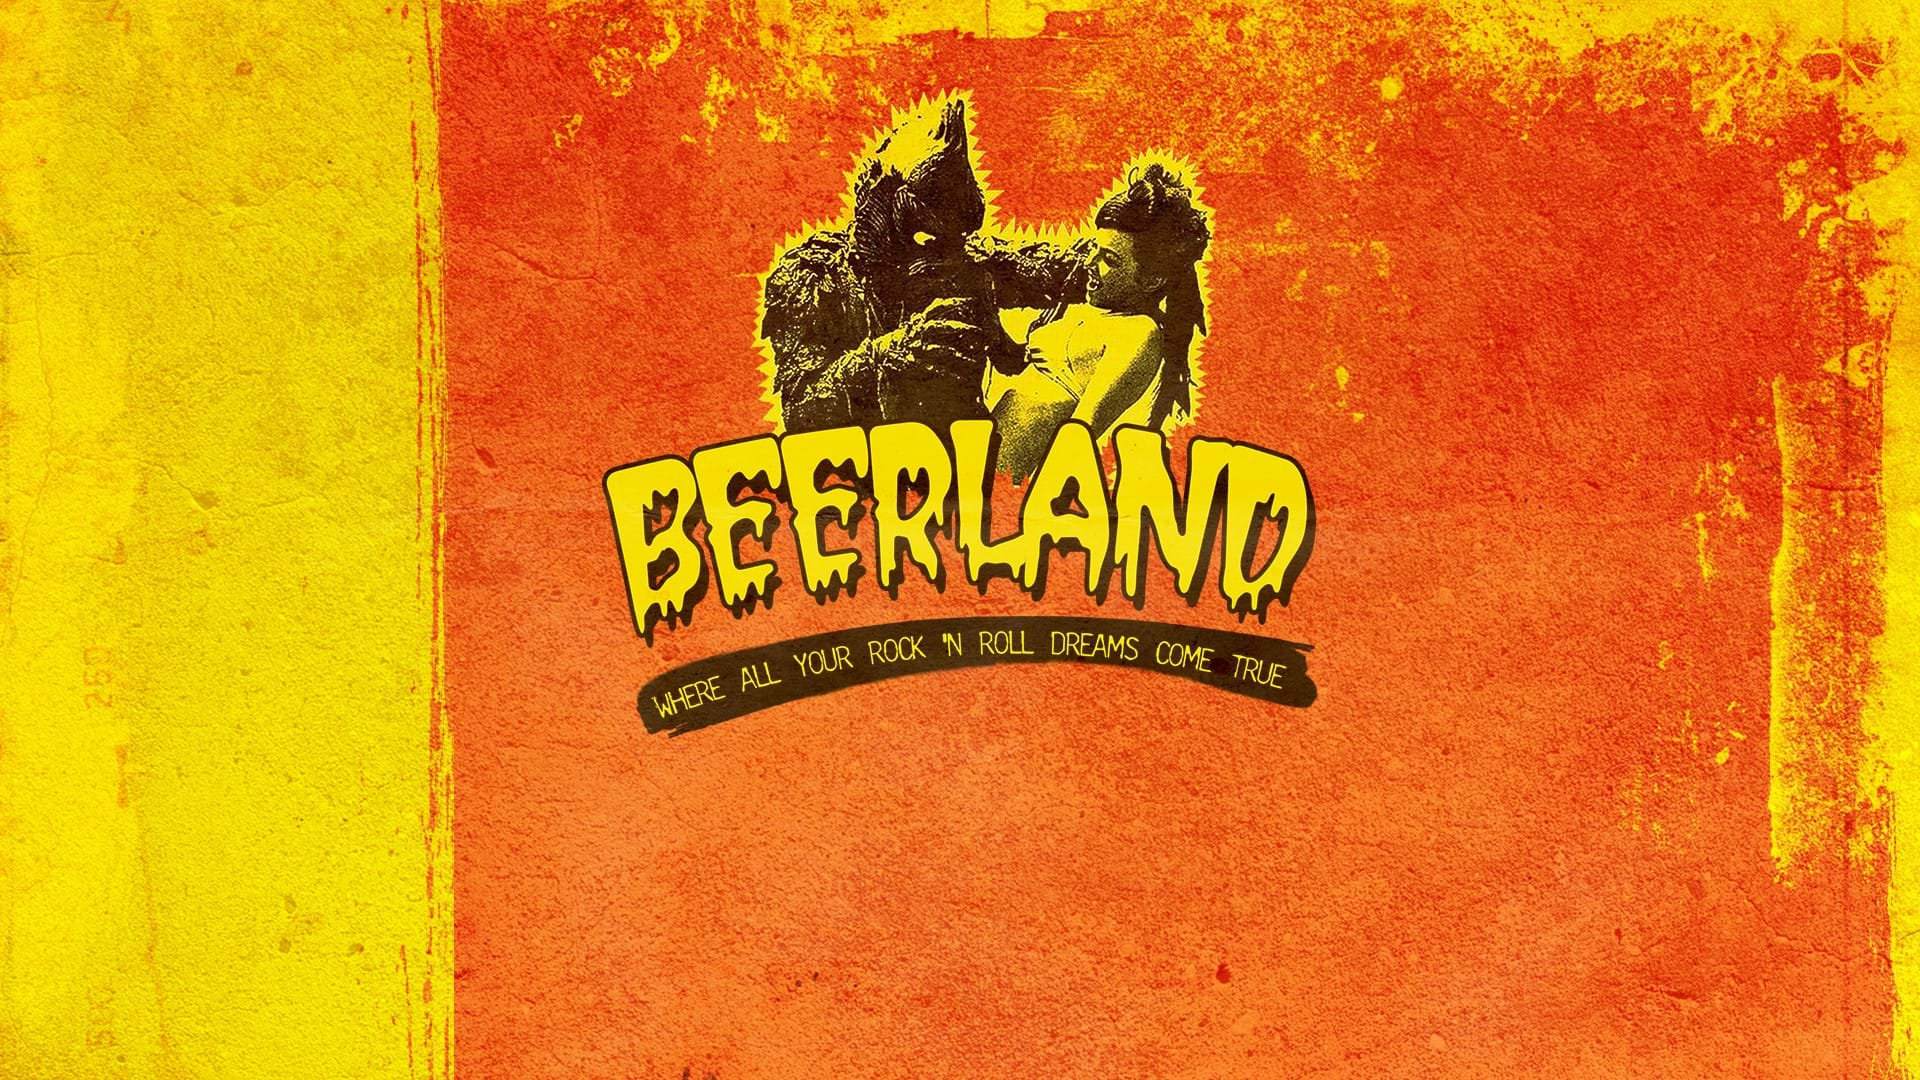 BEERLAND 2018 MET O.A. THERAPY?